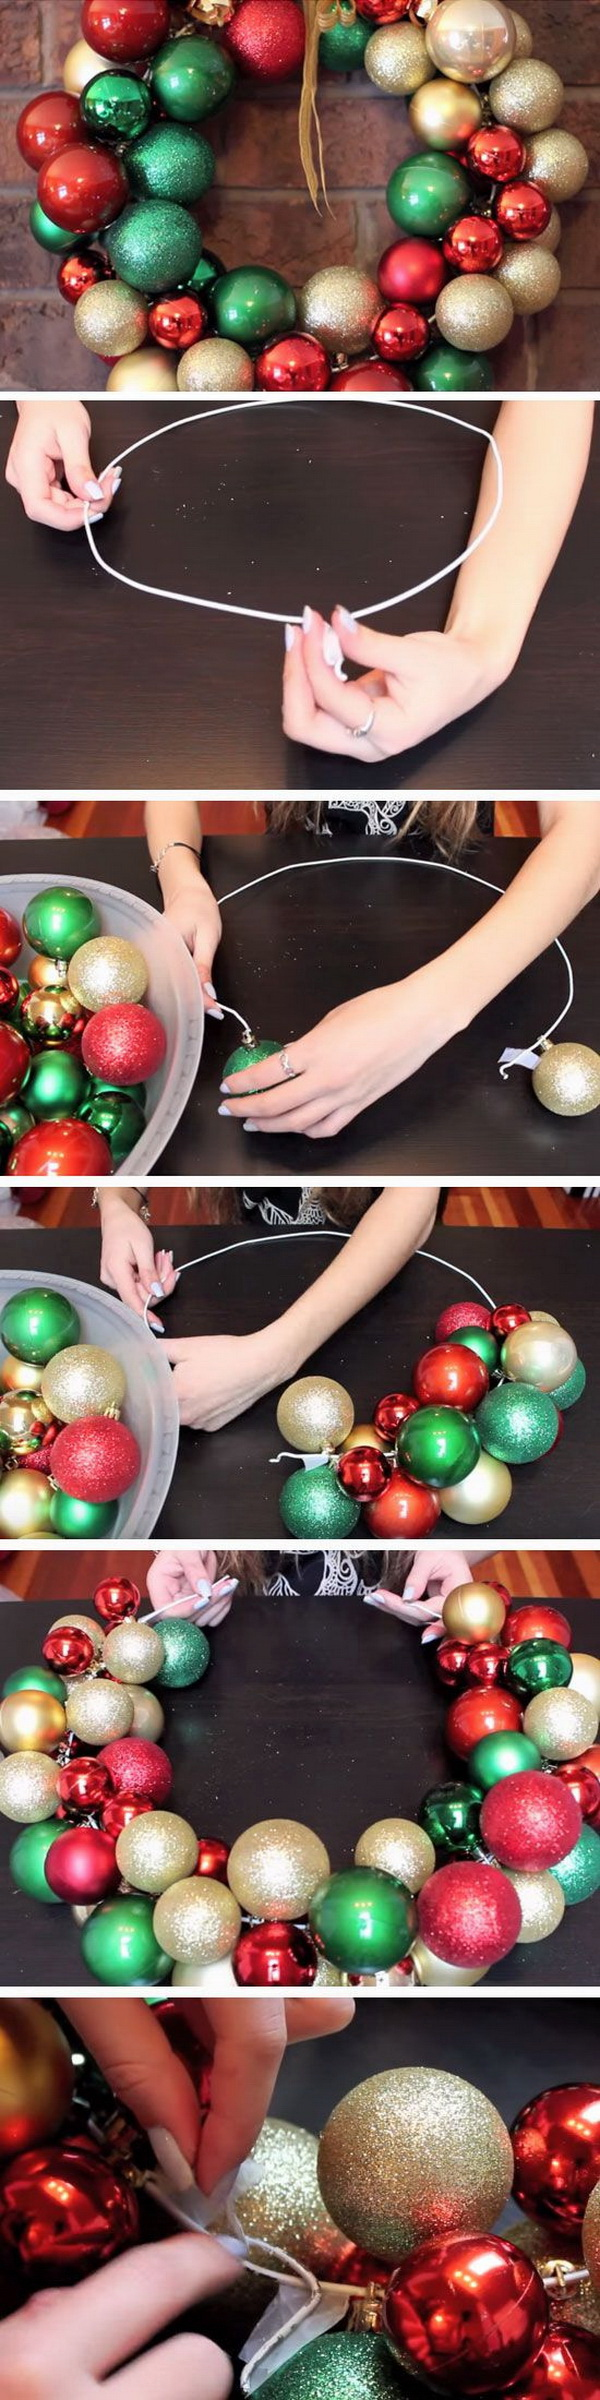 Homemade Projects & Ideas for Christmas Decoration: Christmas DIY: Beautiful Baubles Ornament Wreath.